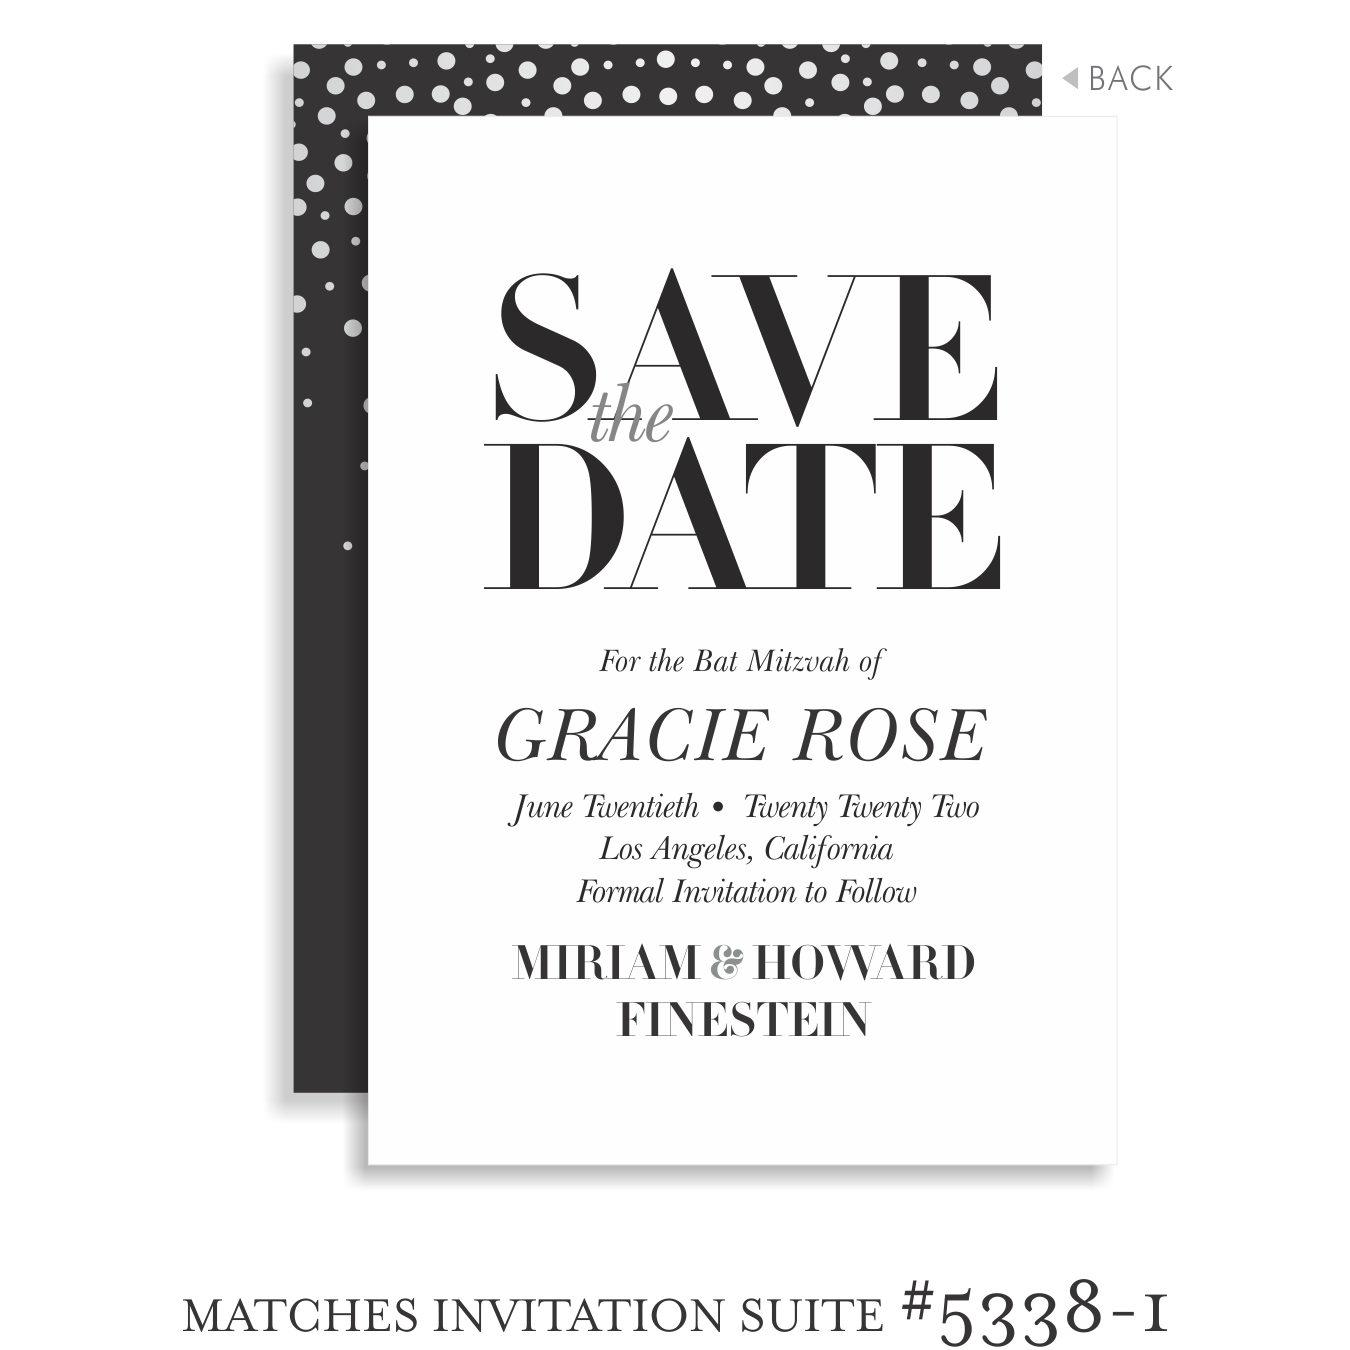 5338-1 GRACIE ROSE DECOR 08.png